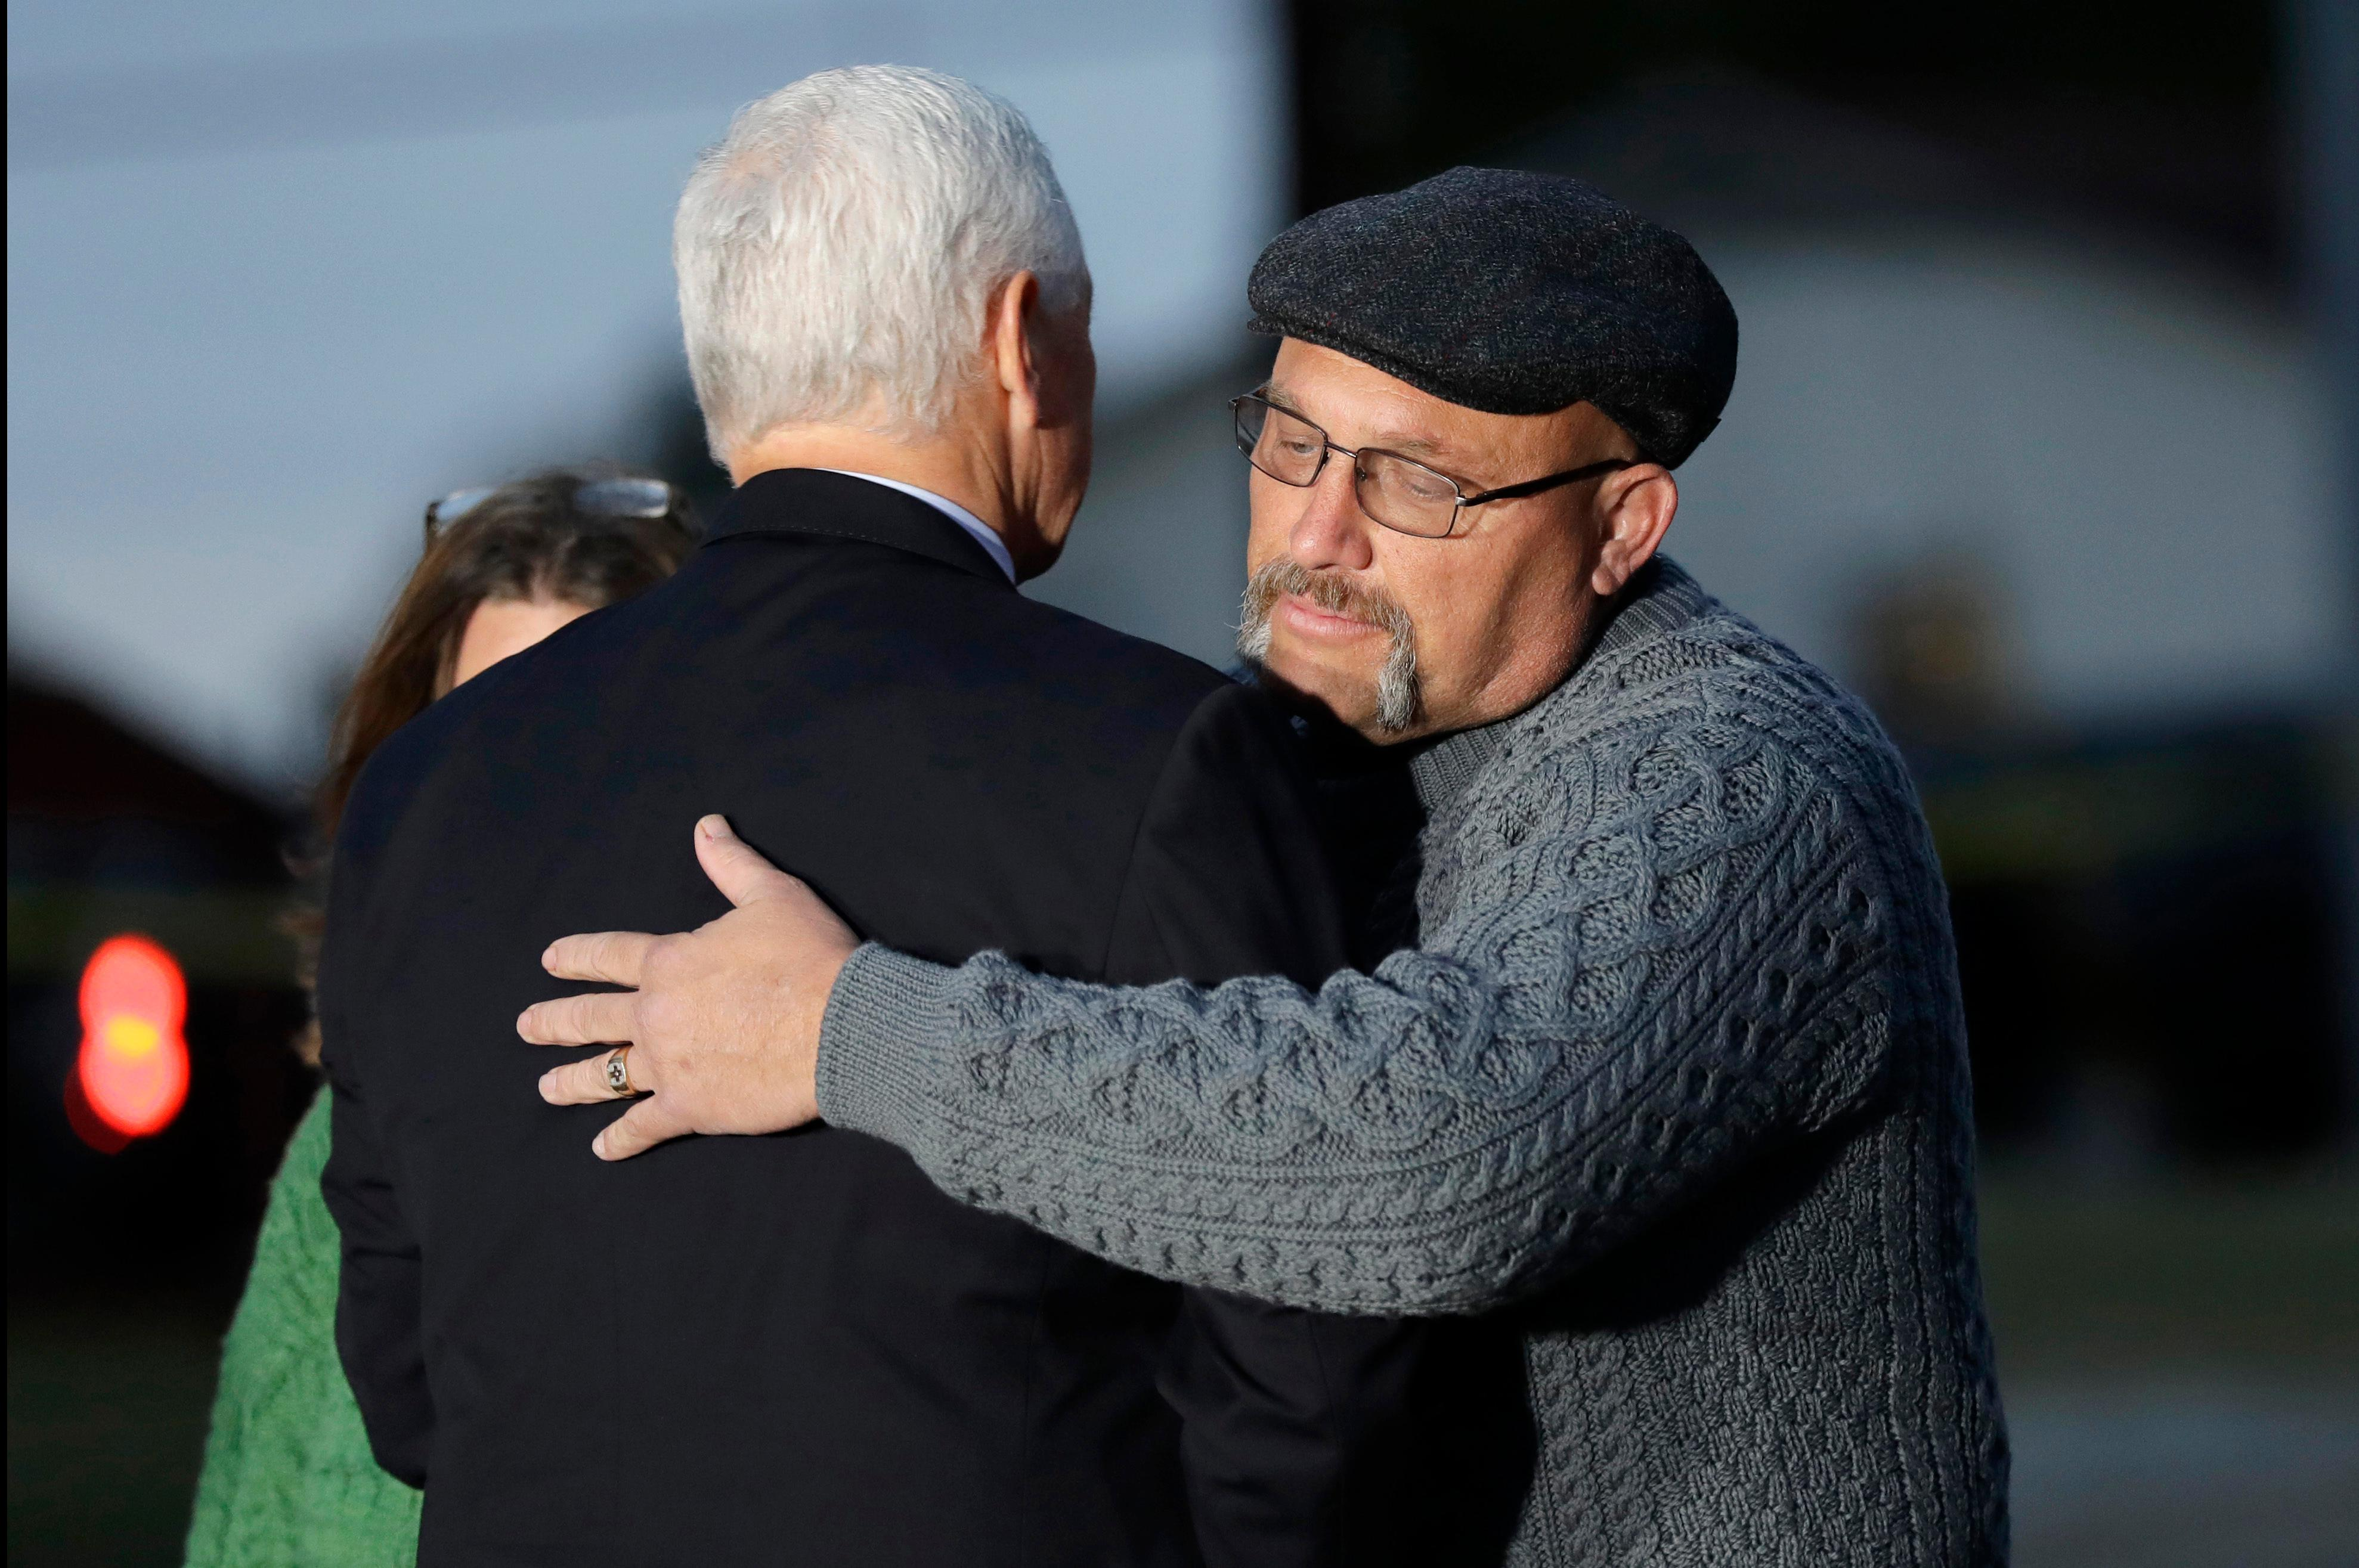 Vice President Mike Pence hugs Pastor Frank Pomeroy outside the Sutherland Spring Baptist Church during a stop, Wednesday, Nov. 8, 2017, in Sutherland Springs, Texas. A man opened fire inside the church in the small South Texas community on Sunday, killing and wounding many. Pomeroy's daughter was killed in the shooting. (AP Photo/Eric Gay)